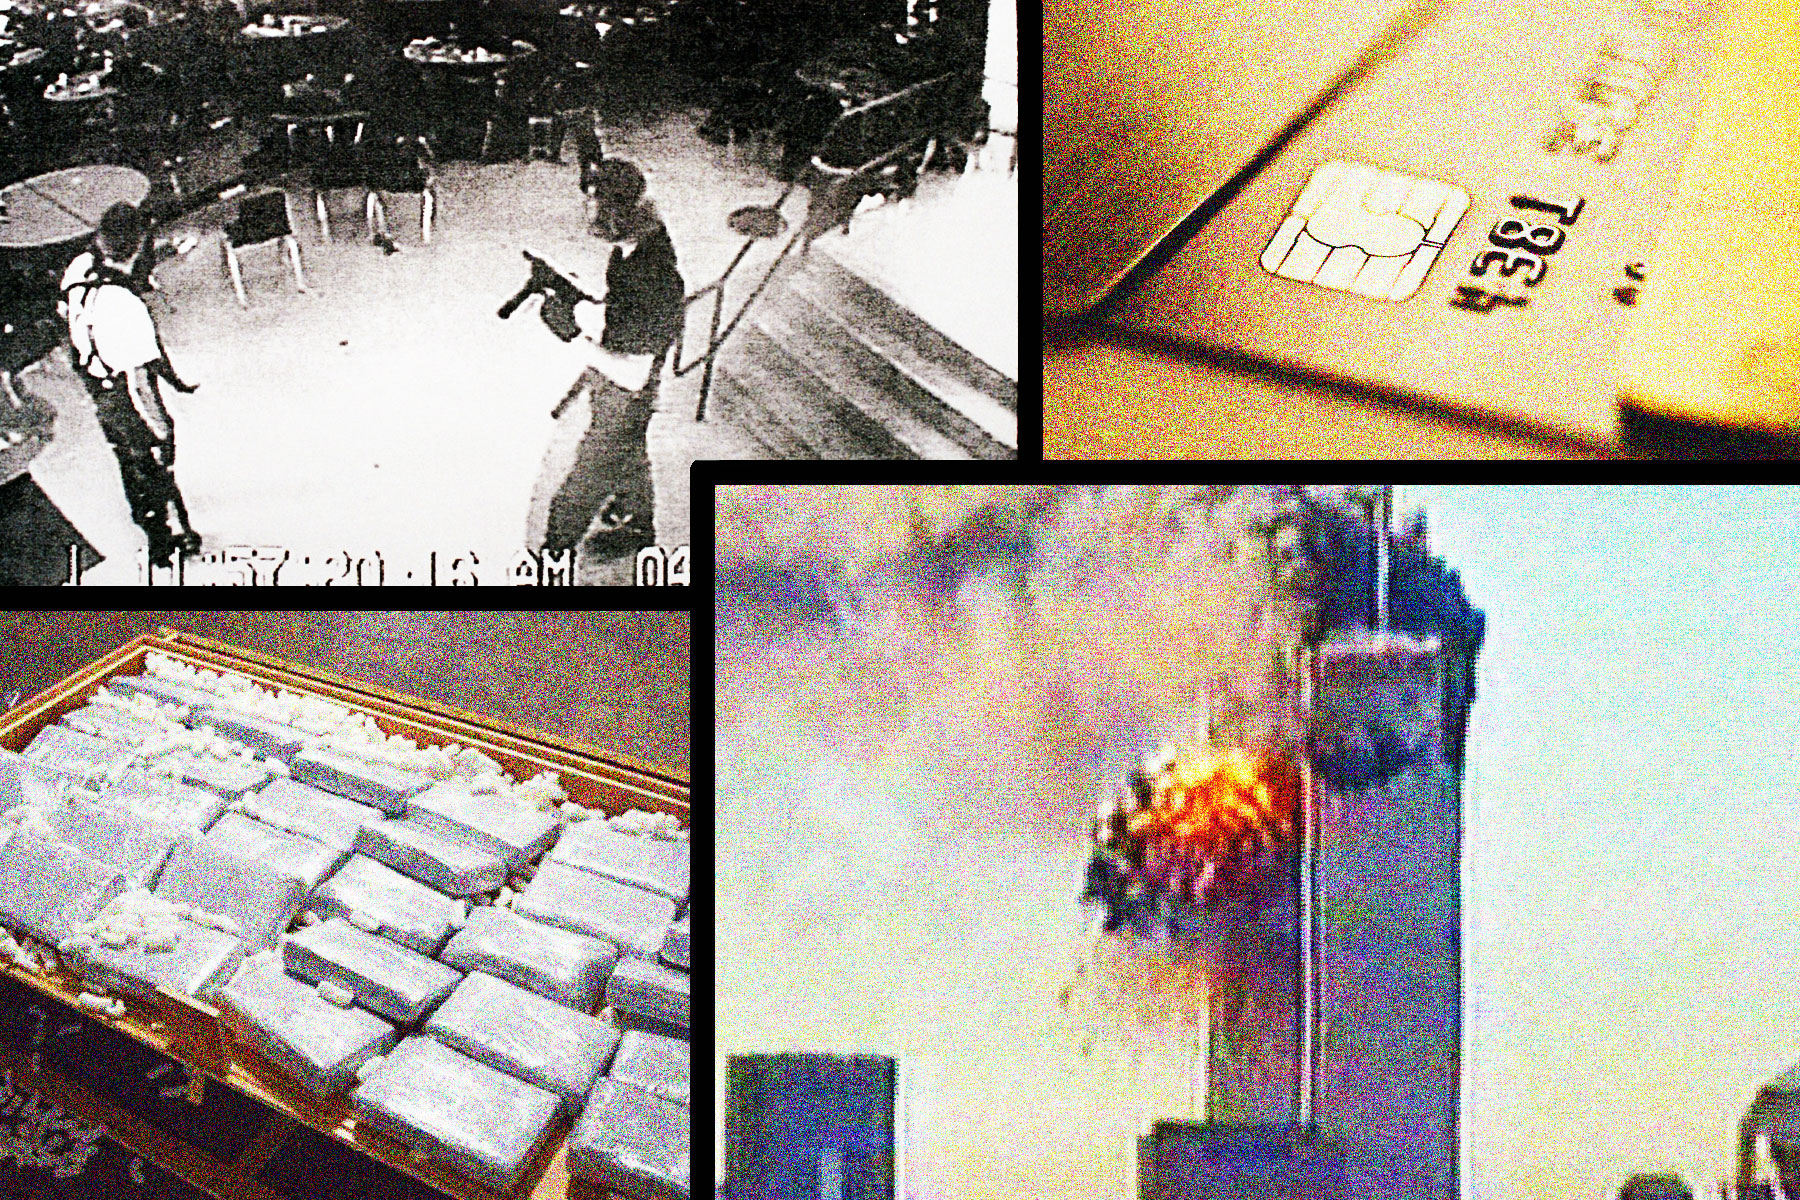 The Granddaddy of American Conspiracy Theorists